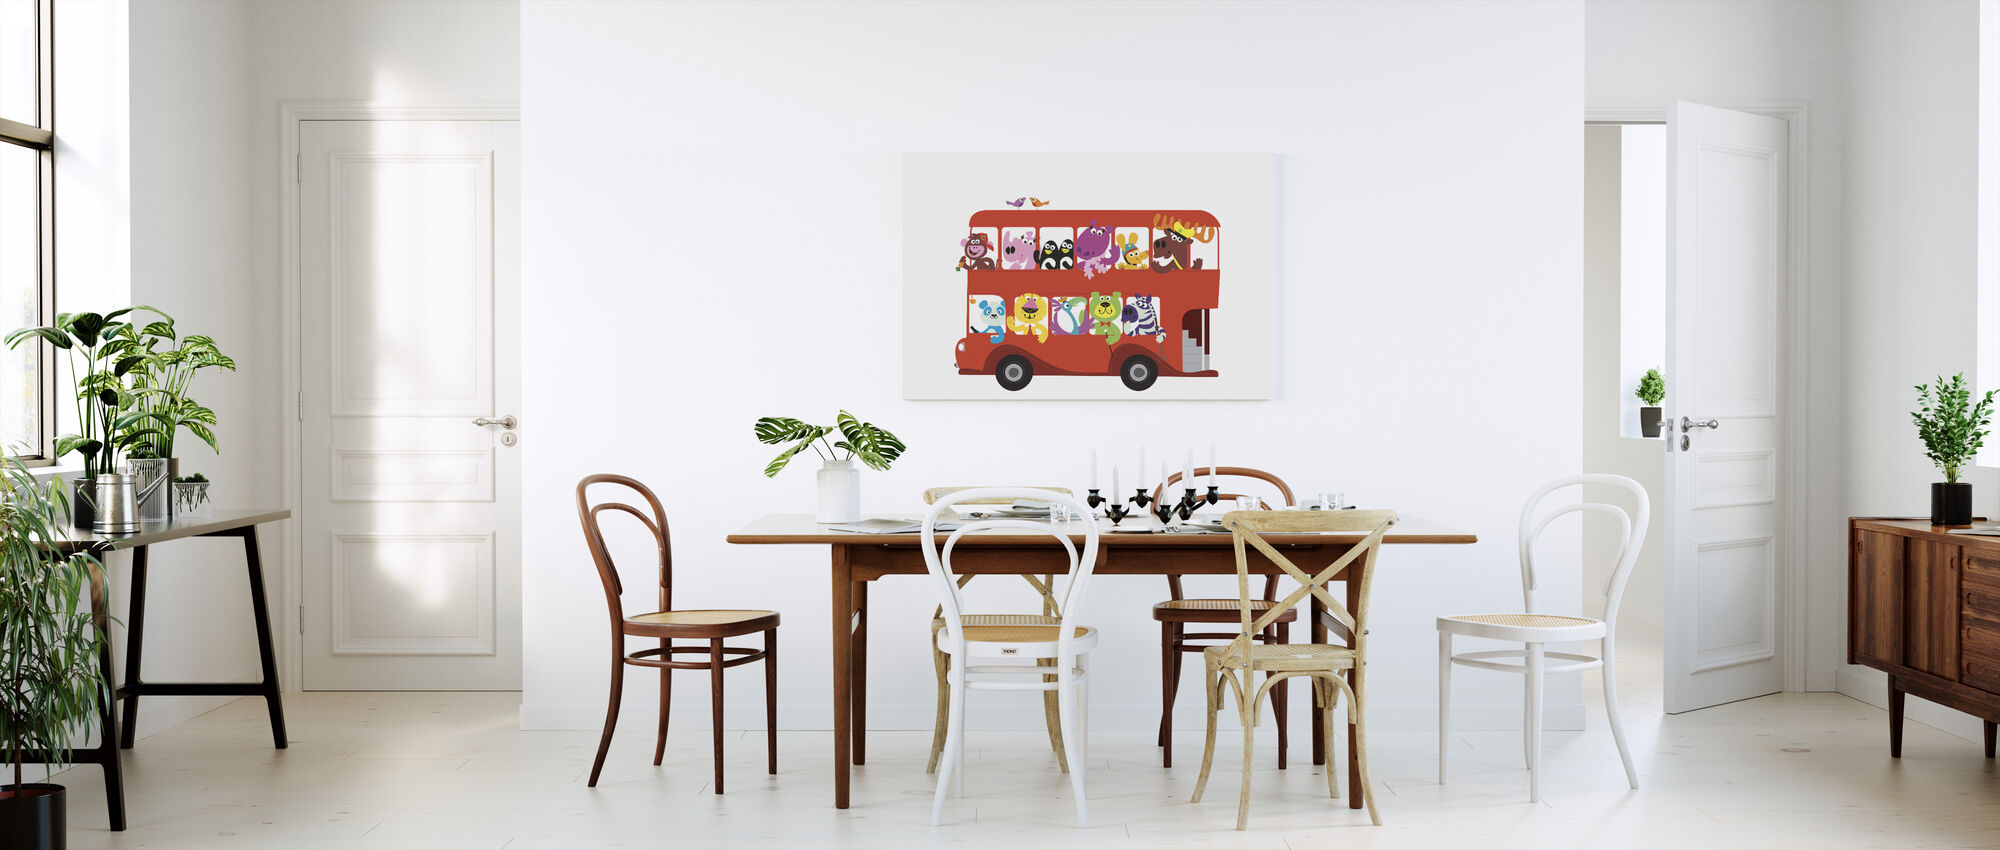 All on Board the Marsh Mellow Island Bus - Canvas print - Kitchen